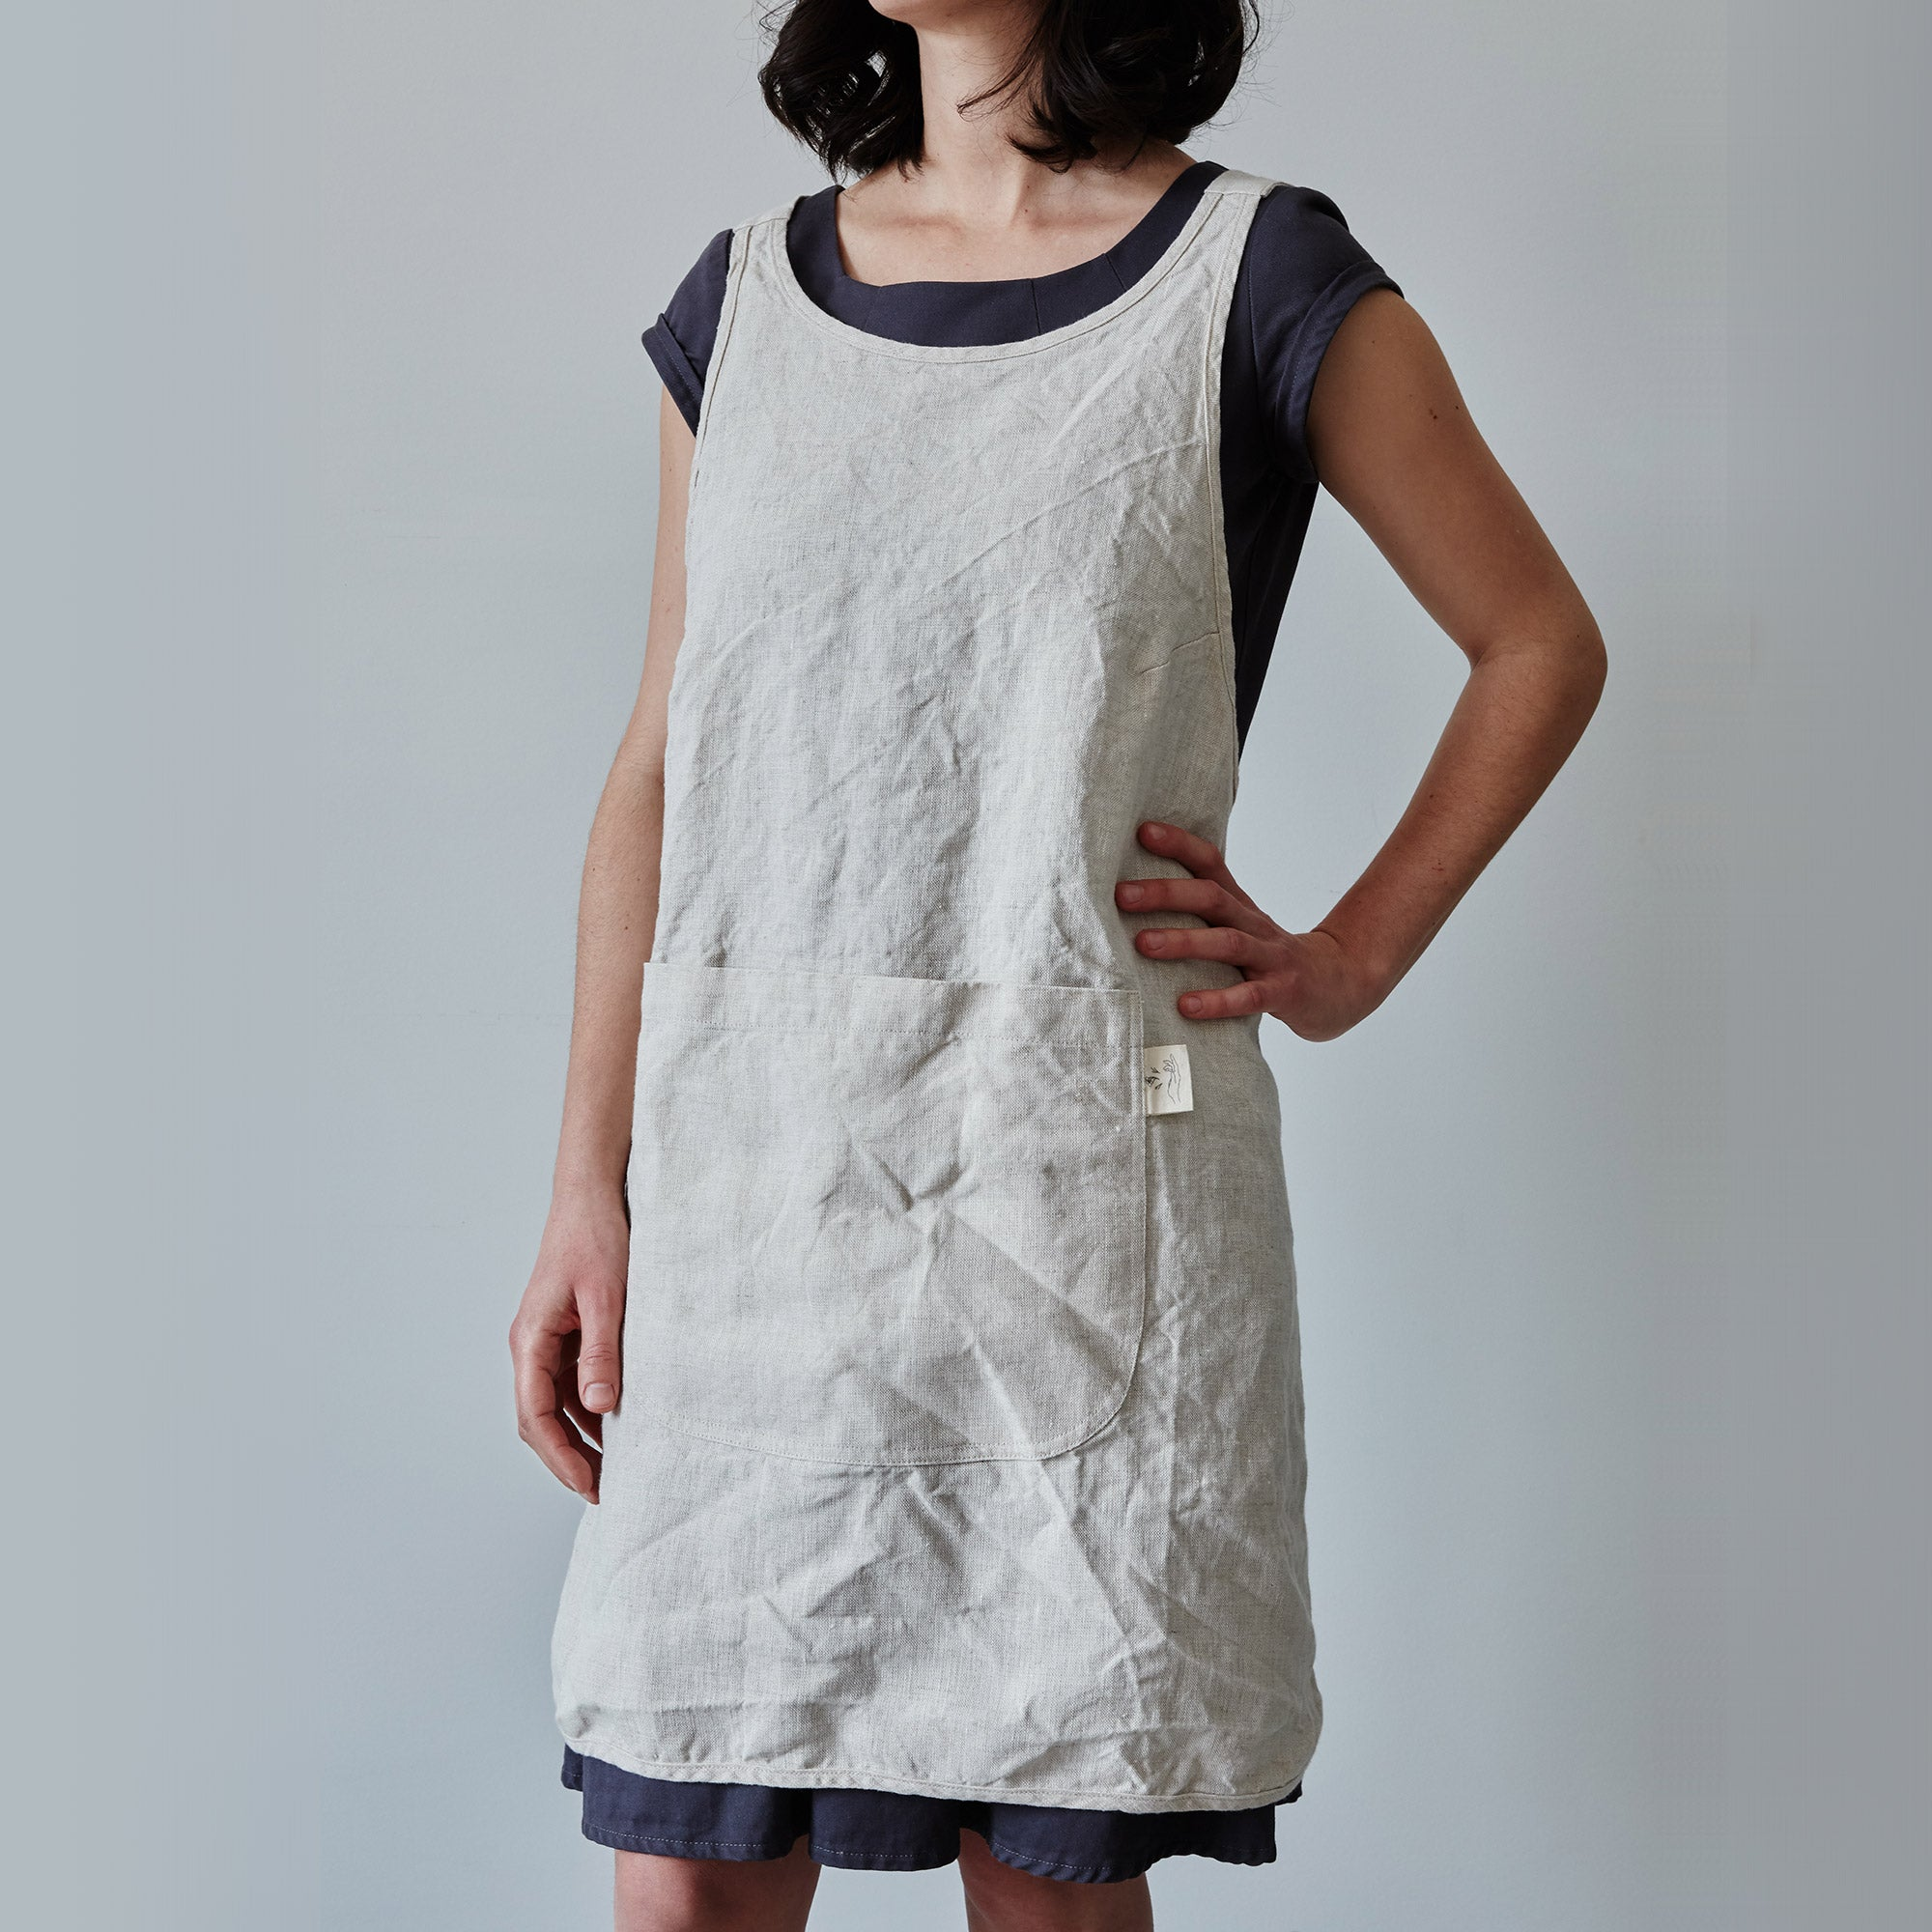 Handmade 100% Linen Kitchen Apron - One Size - Fits XS to XL - Sold by Chic & Basta